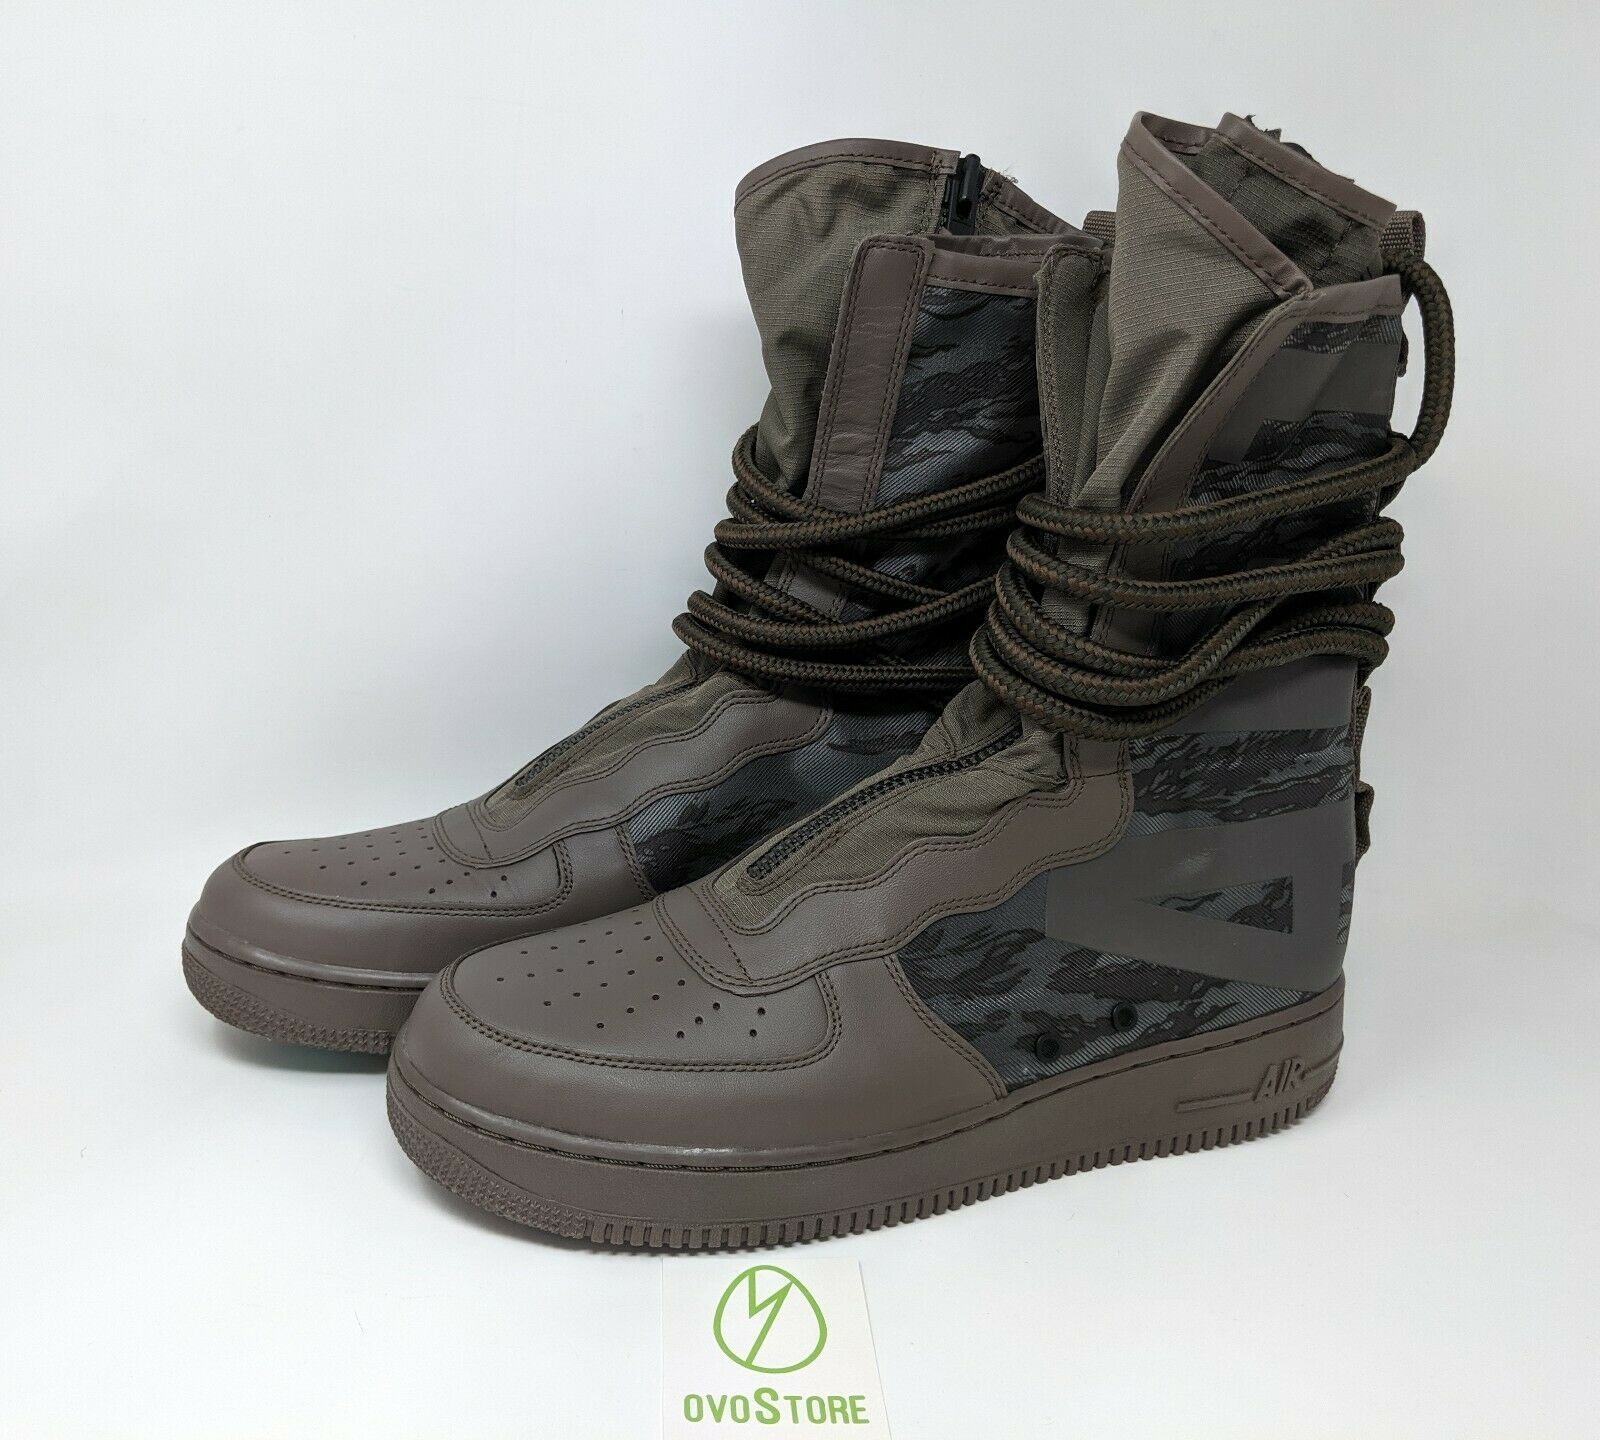 Nike SF Air Force 1 High BOOTS Ridgerock Black Sequoia Size 12 AA1128-203